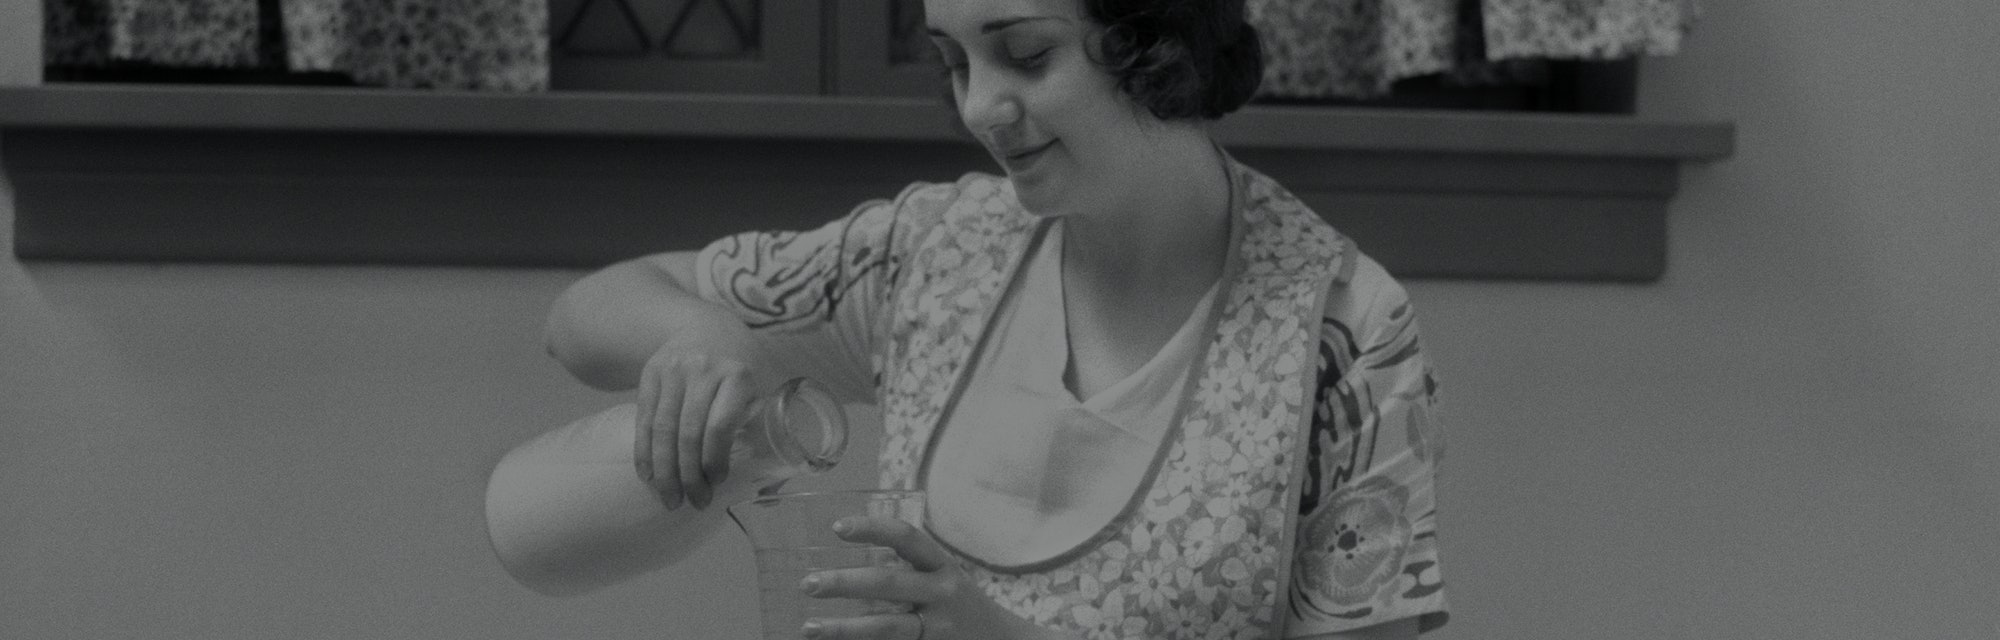 A 1920s image of a young woman preparing food at the table. She can be seen pouring milk from a jug into a measuring glass.